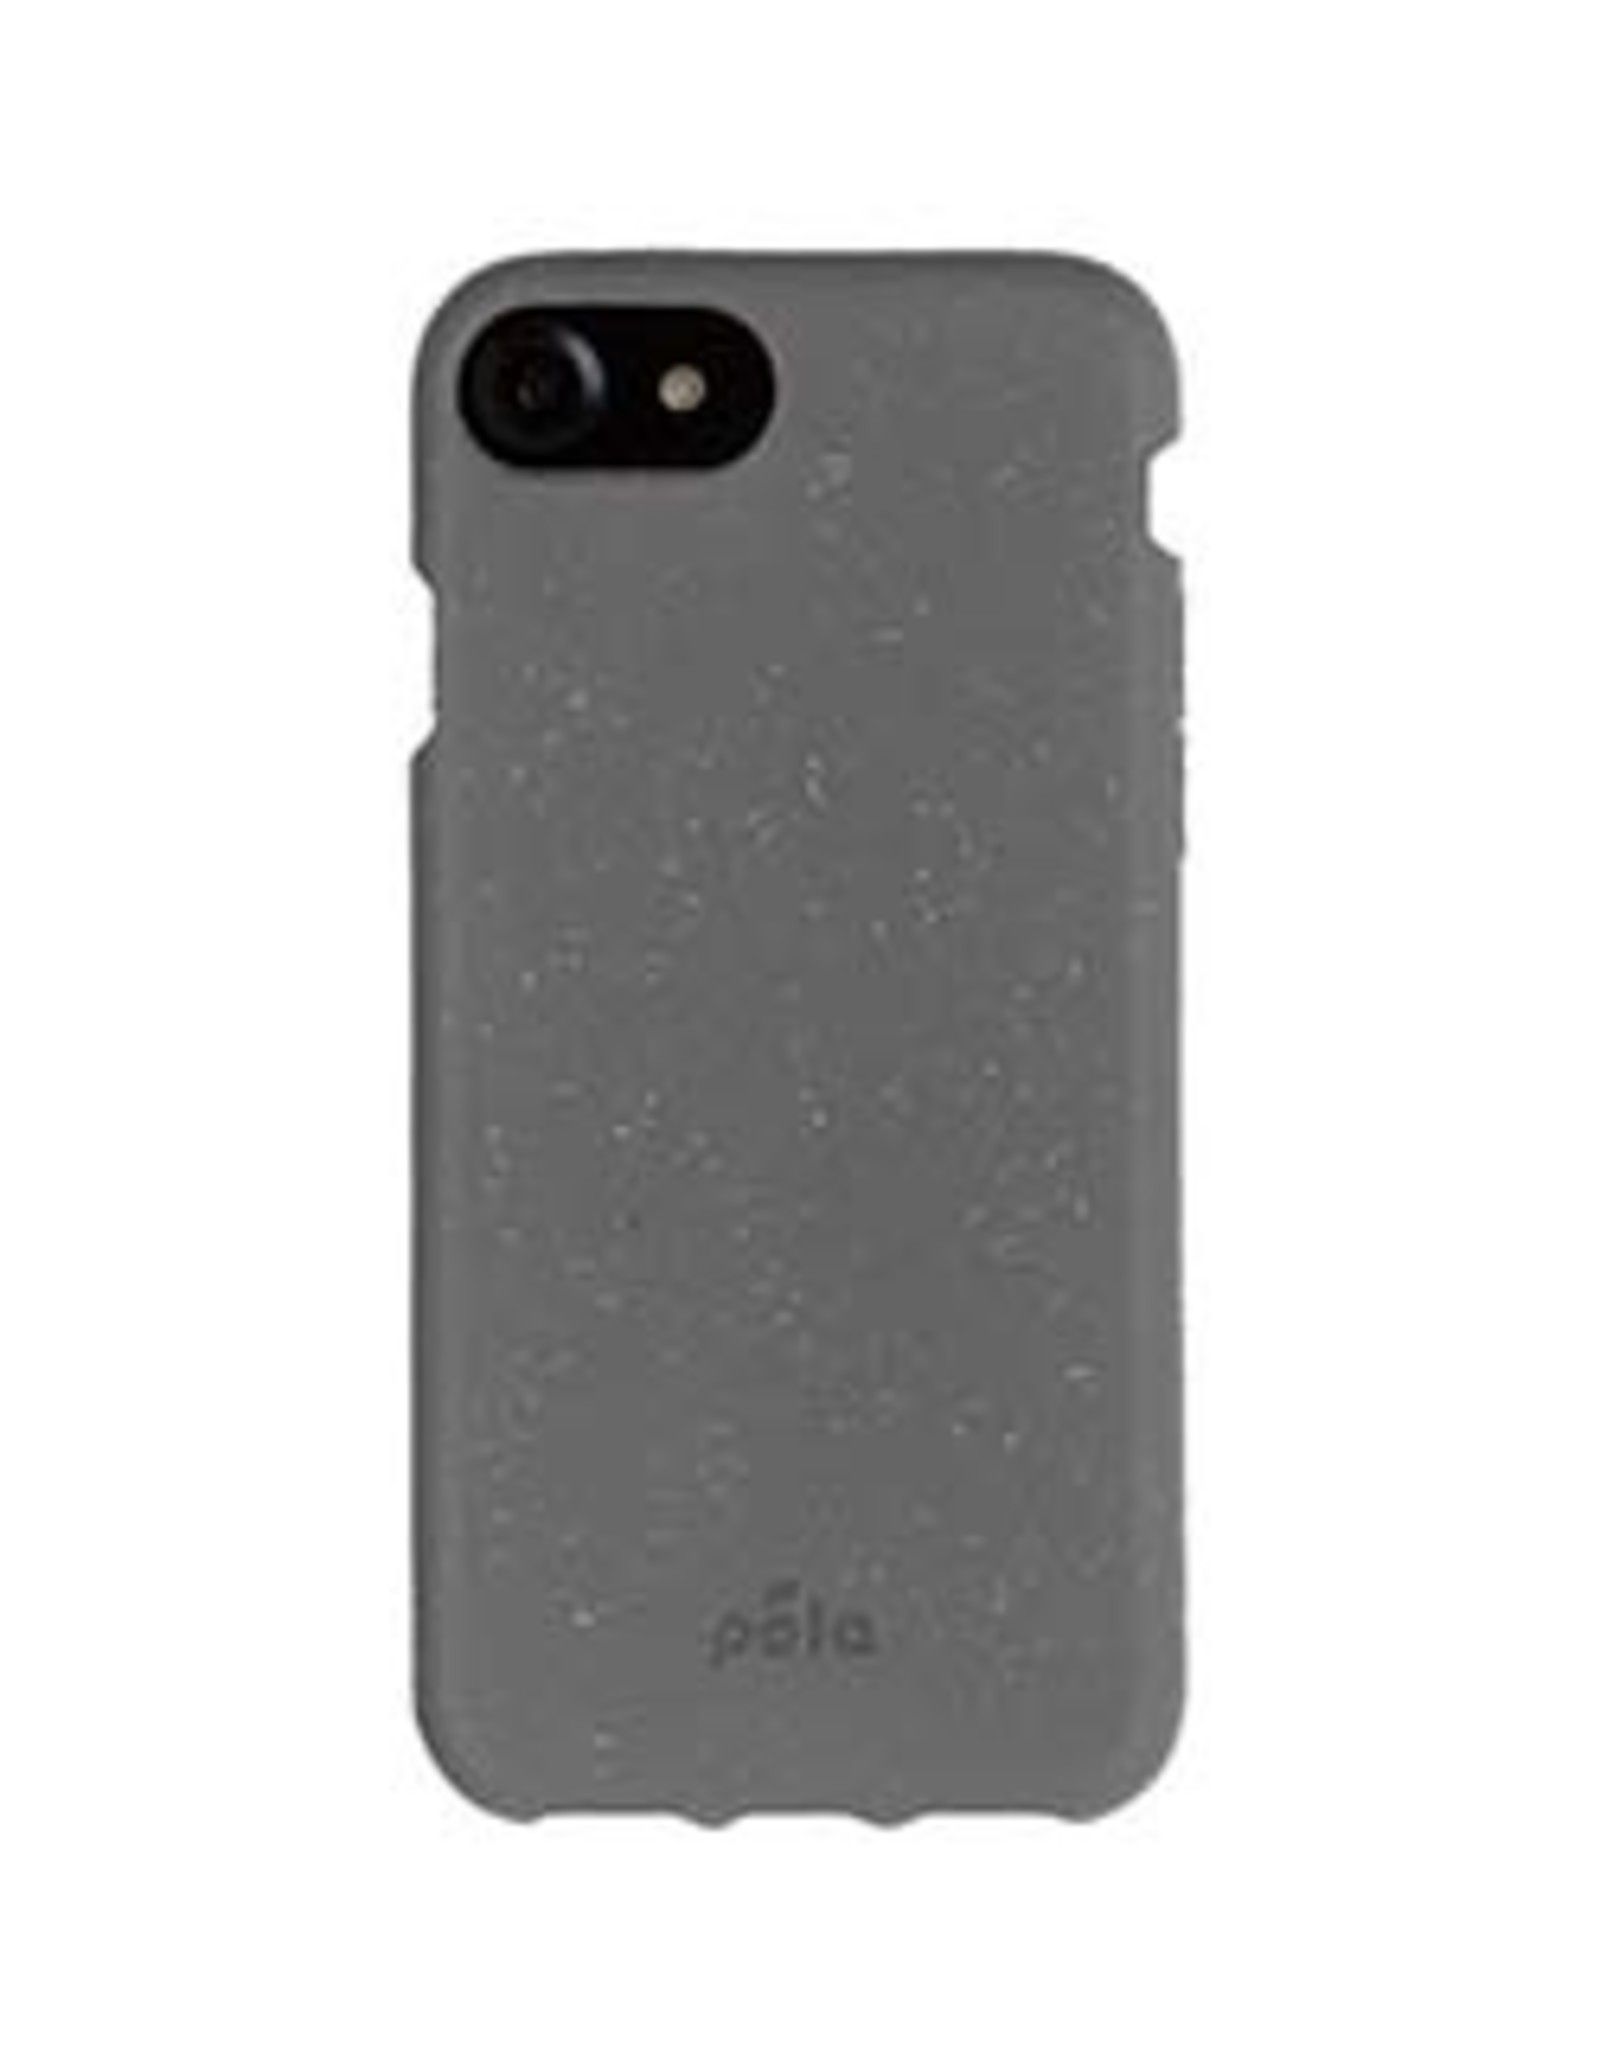 Pela Pela | iPhone 8/7/6S/6 Grey (Shark Skin) Compostable Eco-Friendly Protective Case 15-04706